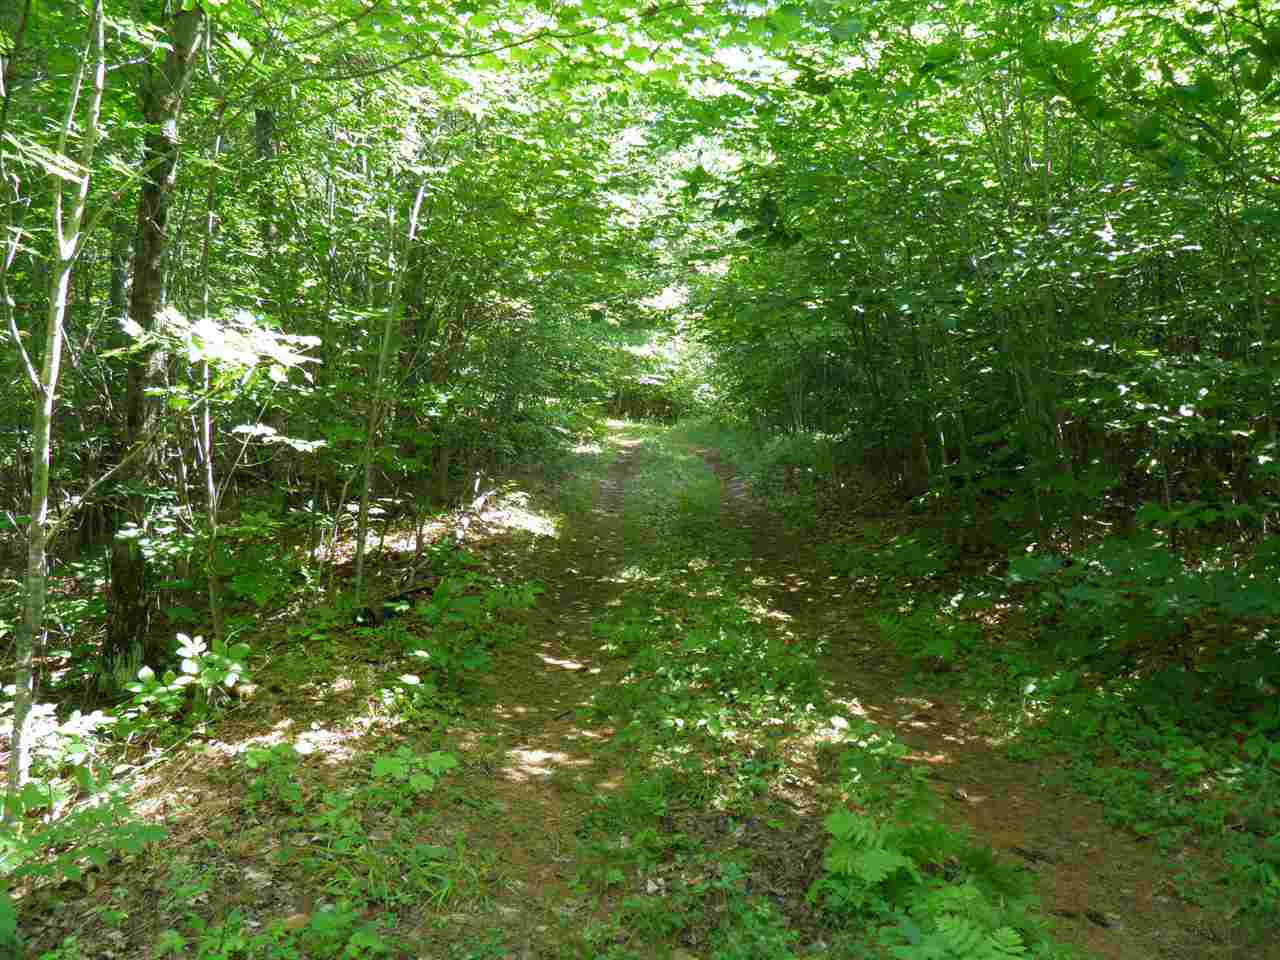 Keeseville image 10